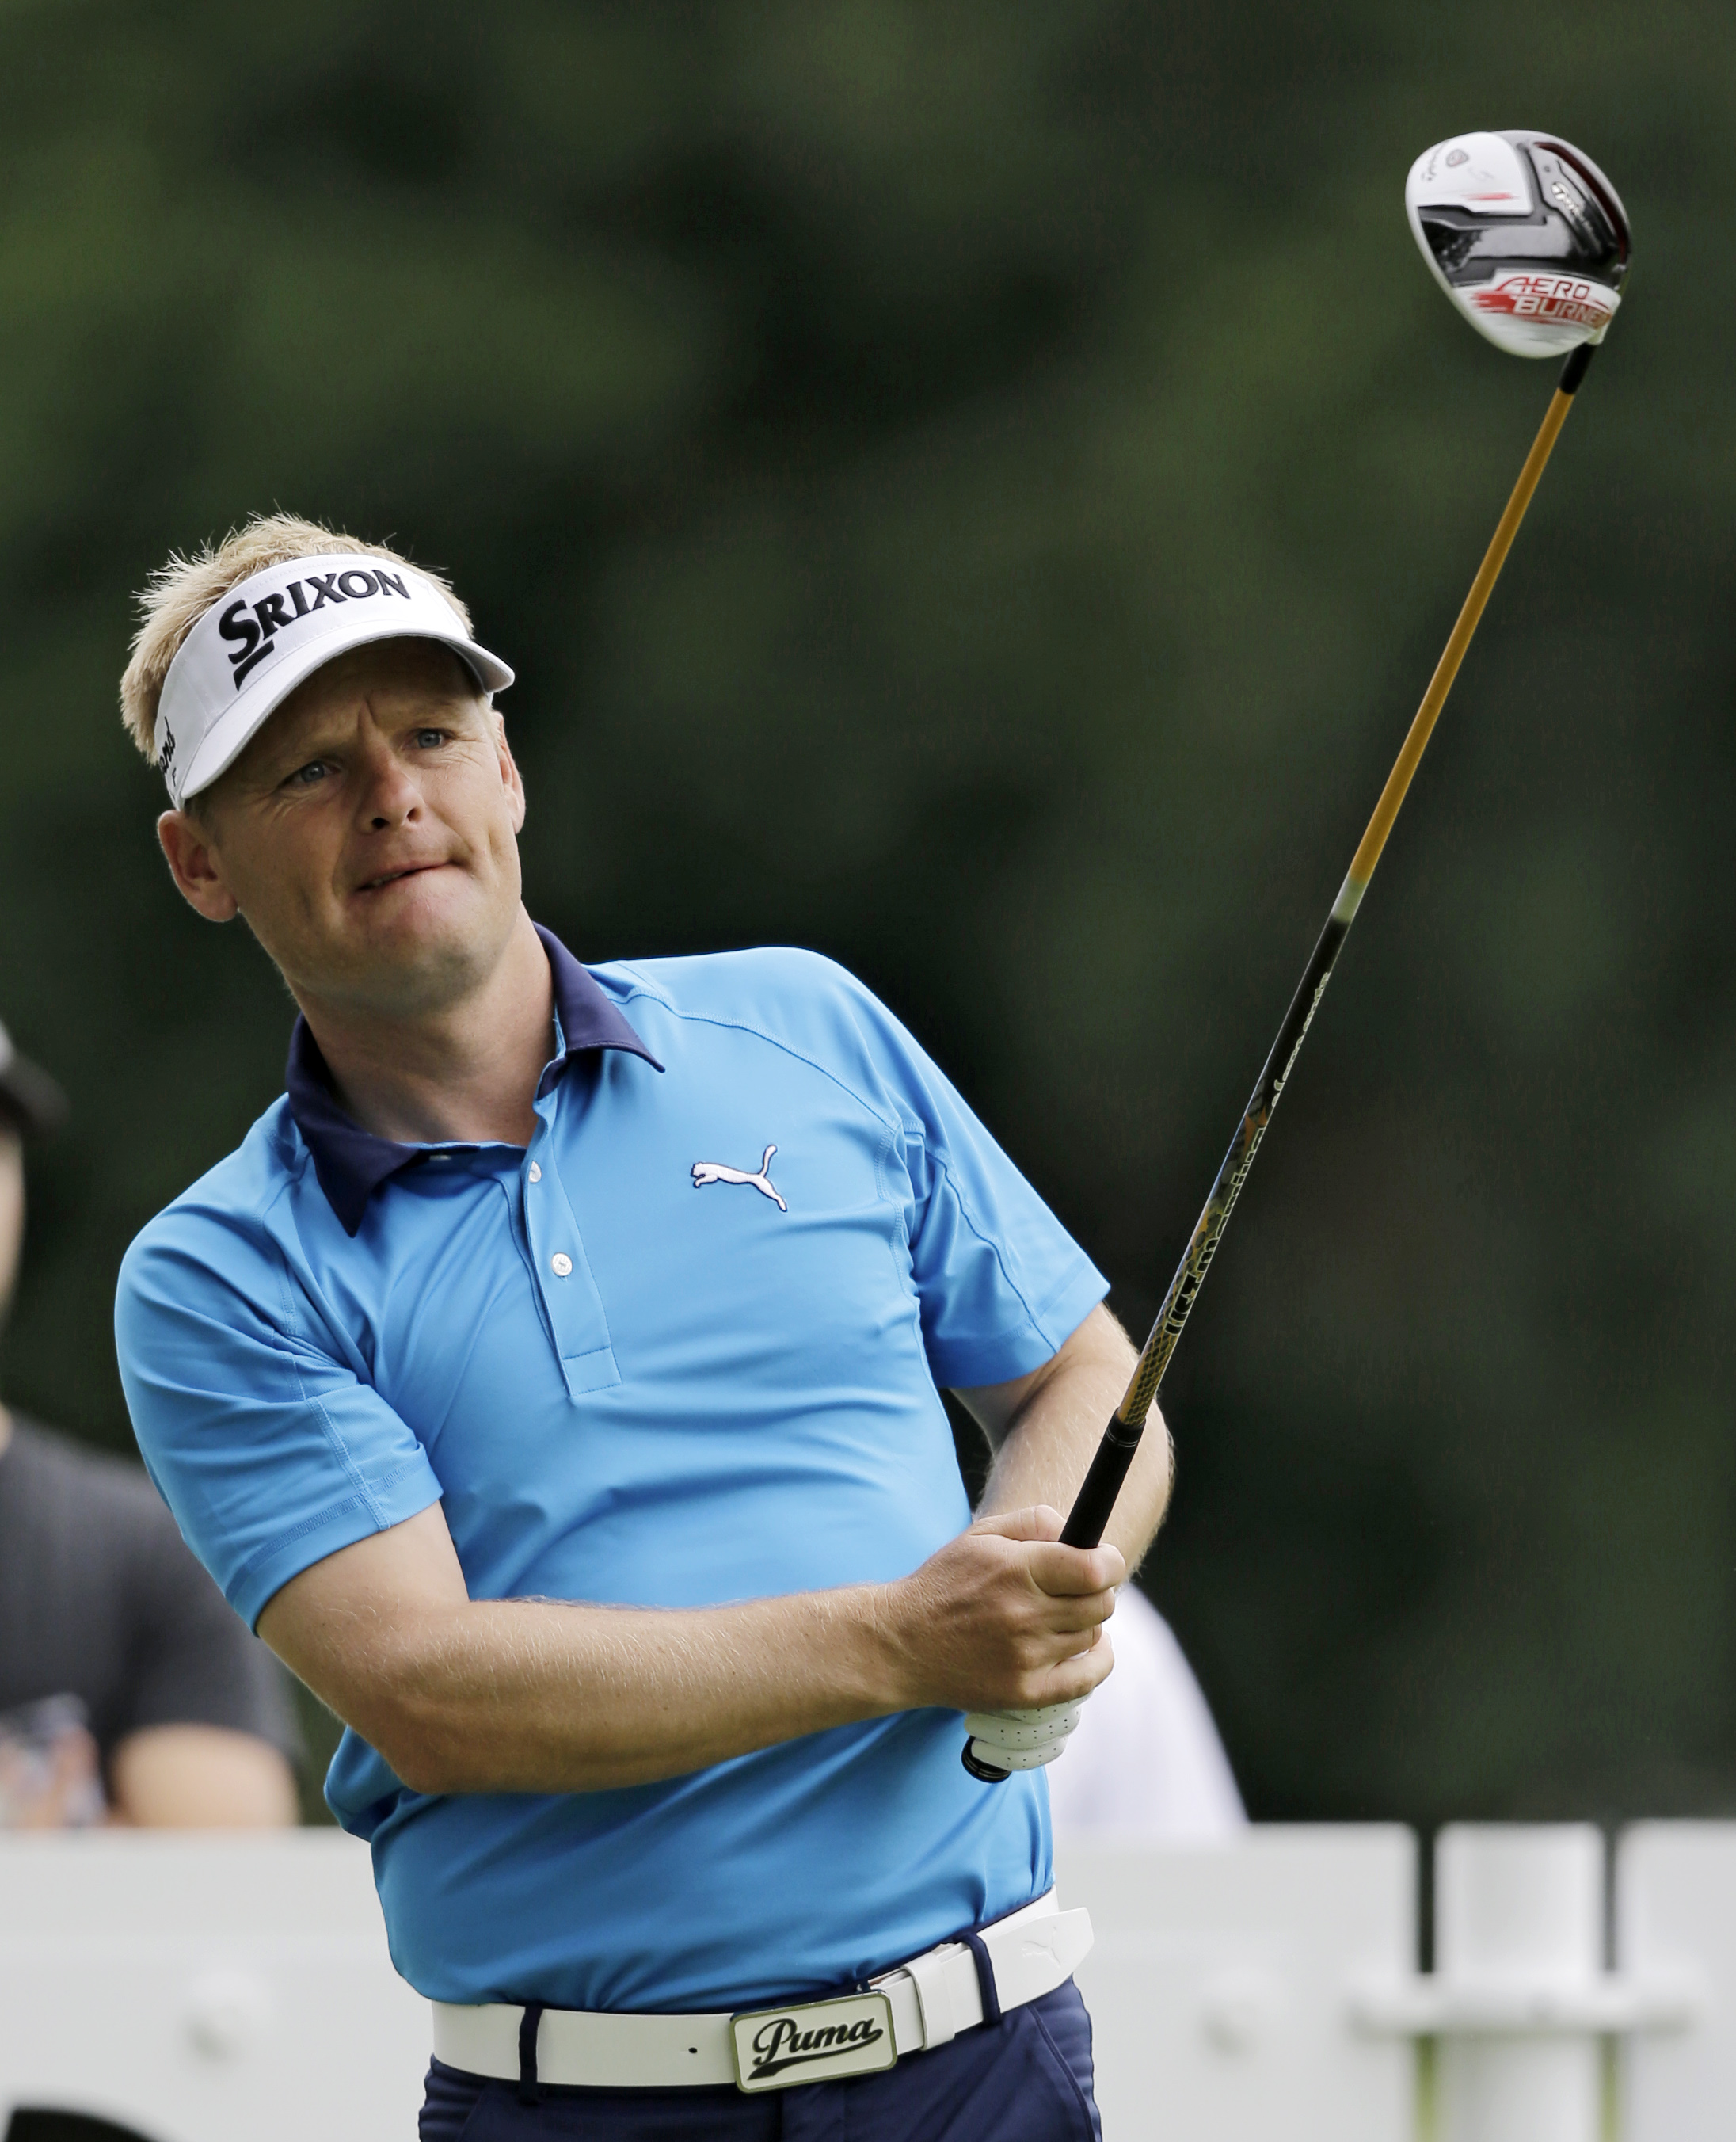 Soren Kjeldsen, from Denmark, tees off on the 11th hole during the first round of the Bridgestone Invitational golf tournament at Firestone Country Club, Thursday, Aug. 6, 2015, in Akron, Ohio. (AP Photo/Tony Dejak)